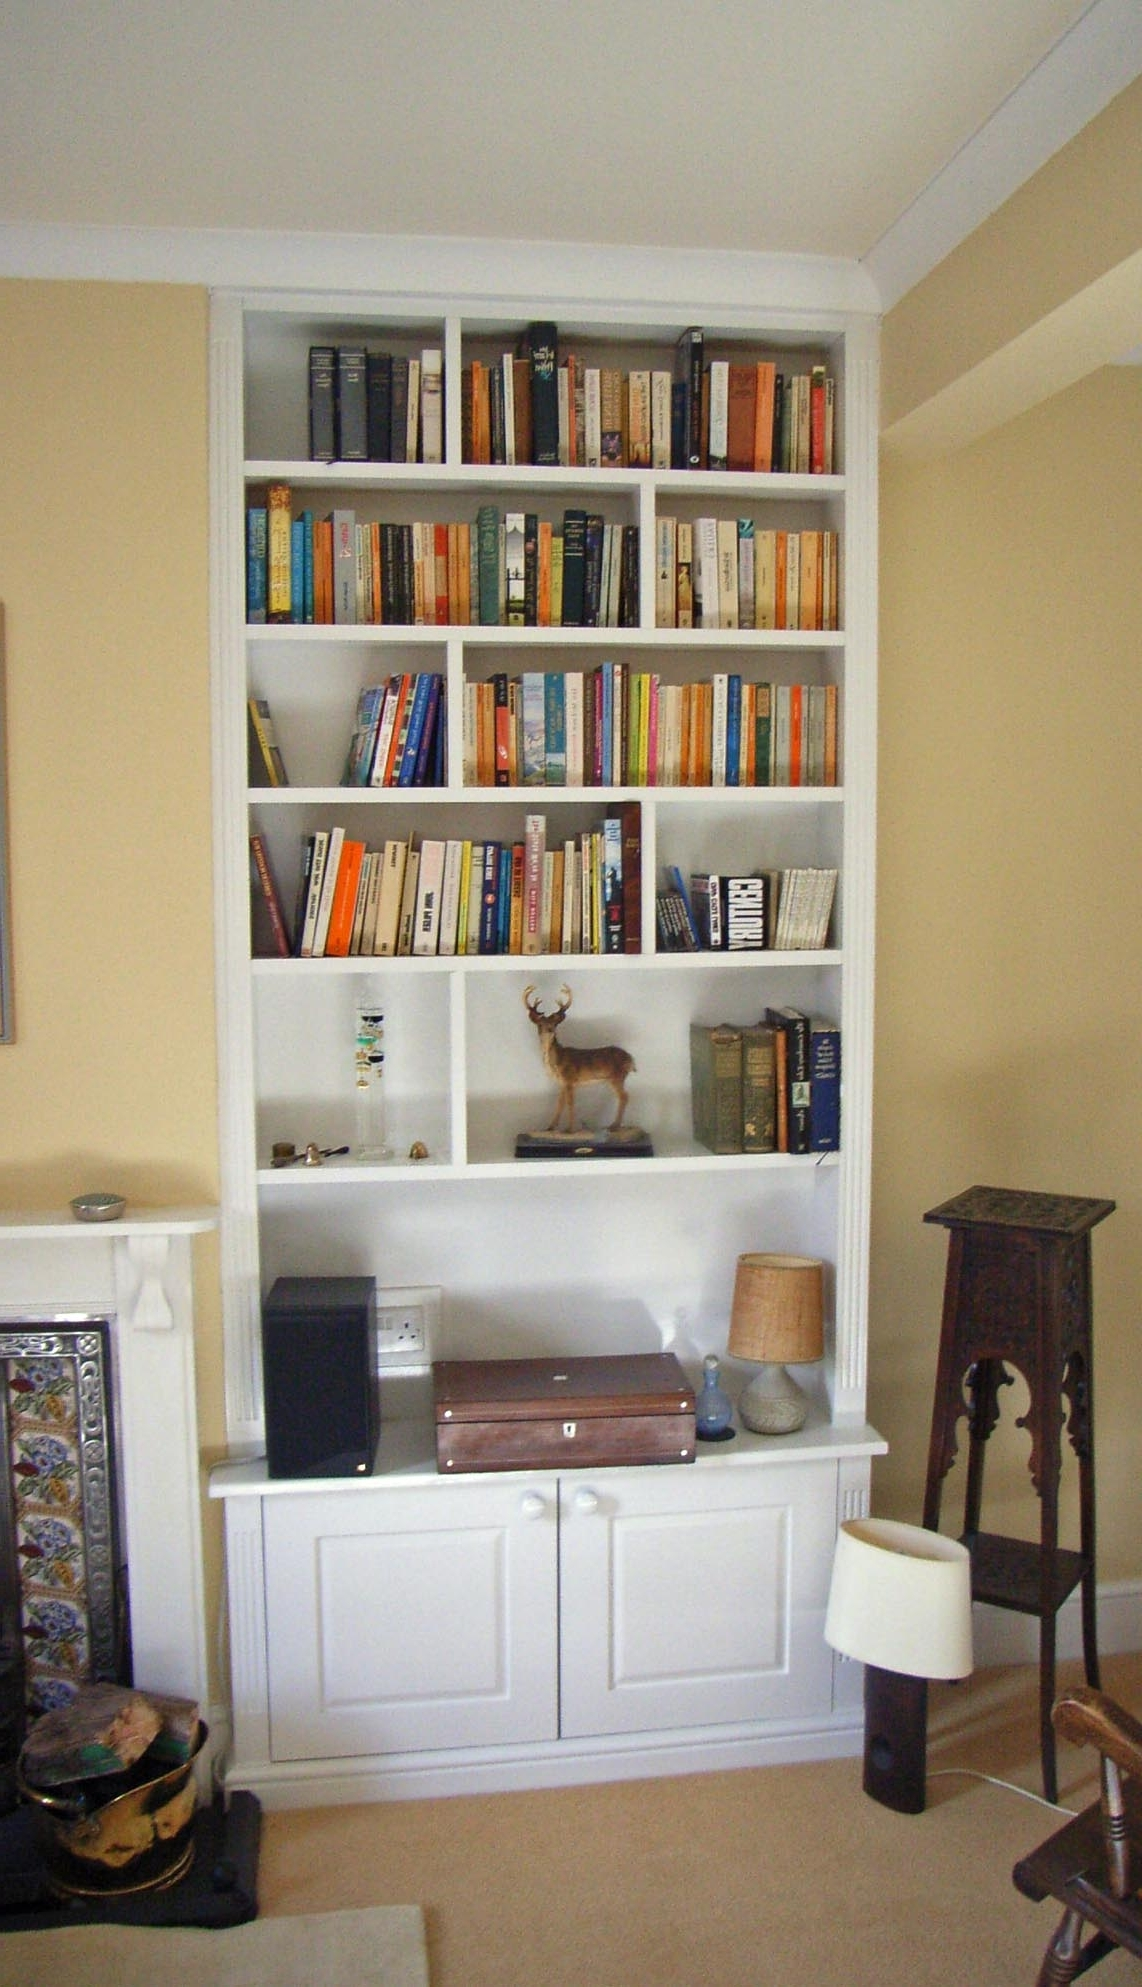 Most Recent Articles With Floating Glass Shelves In Alcove Tag: Shelving In With Shelves And Cupboards (View 7 of 15)